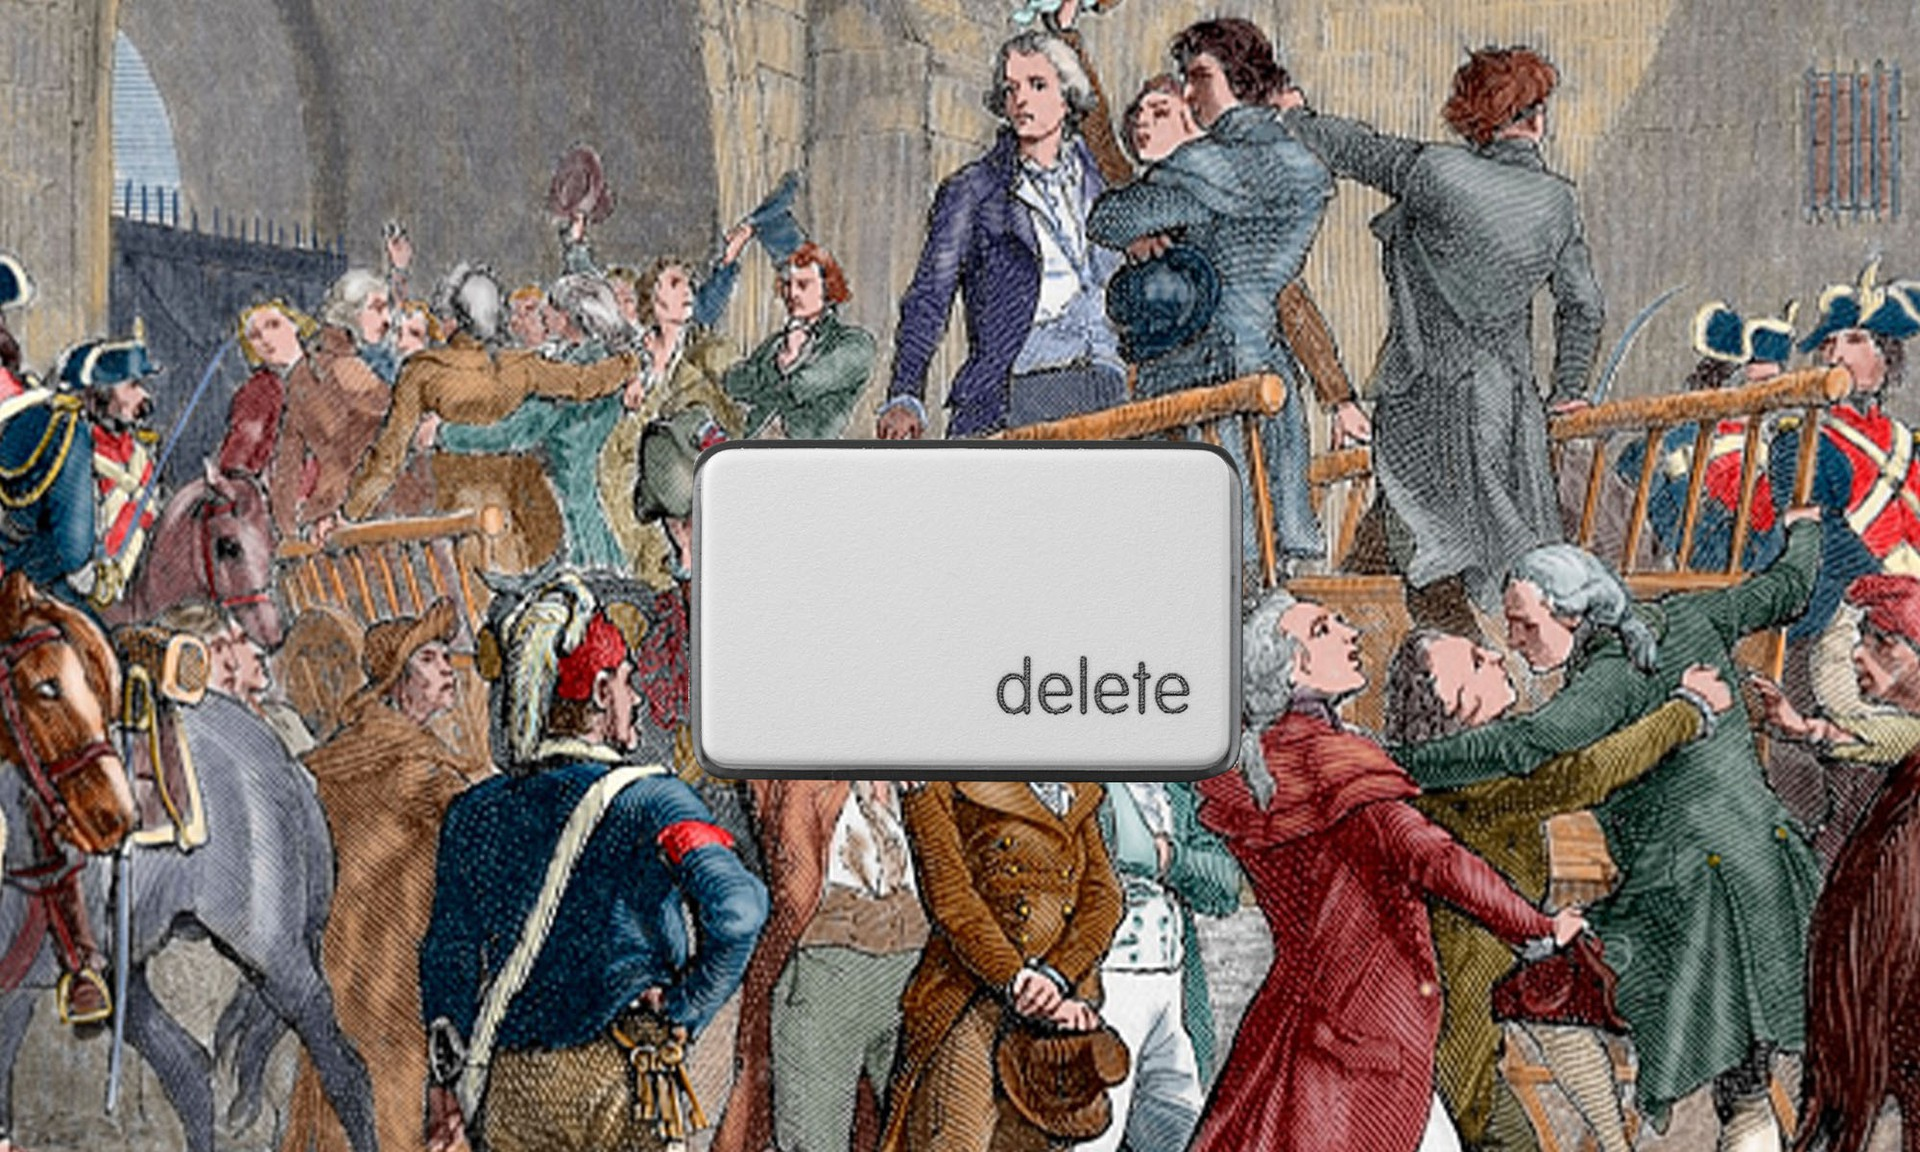 The delete button over a tumbrel